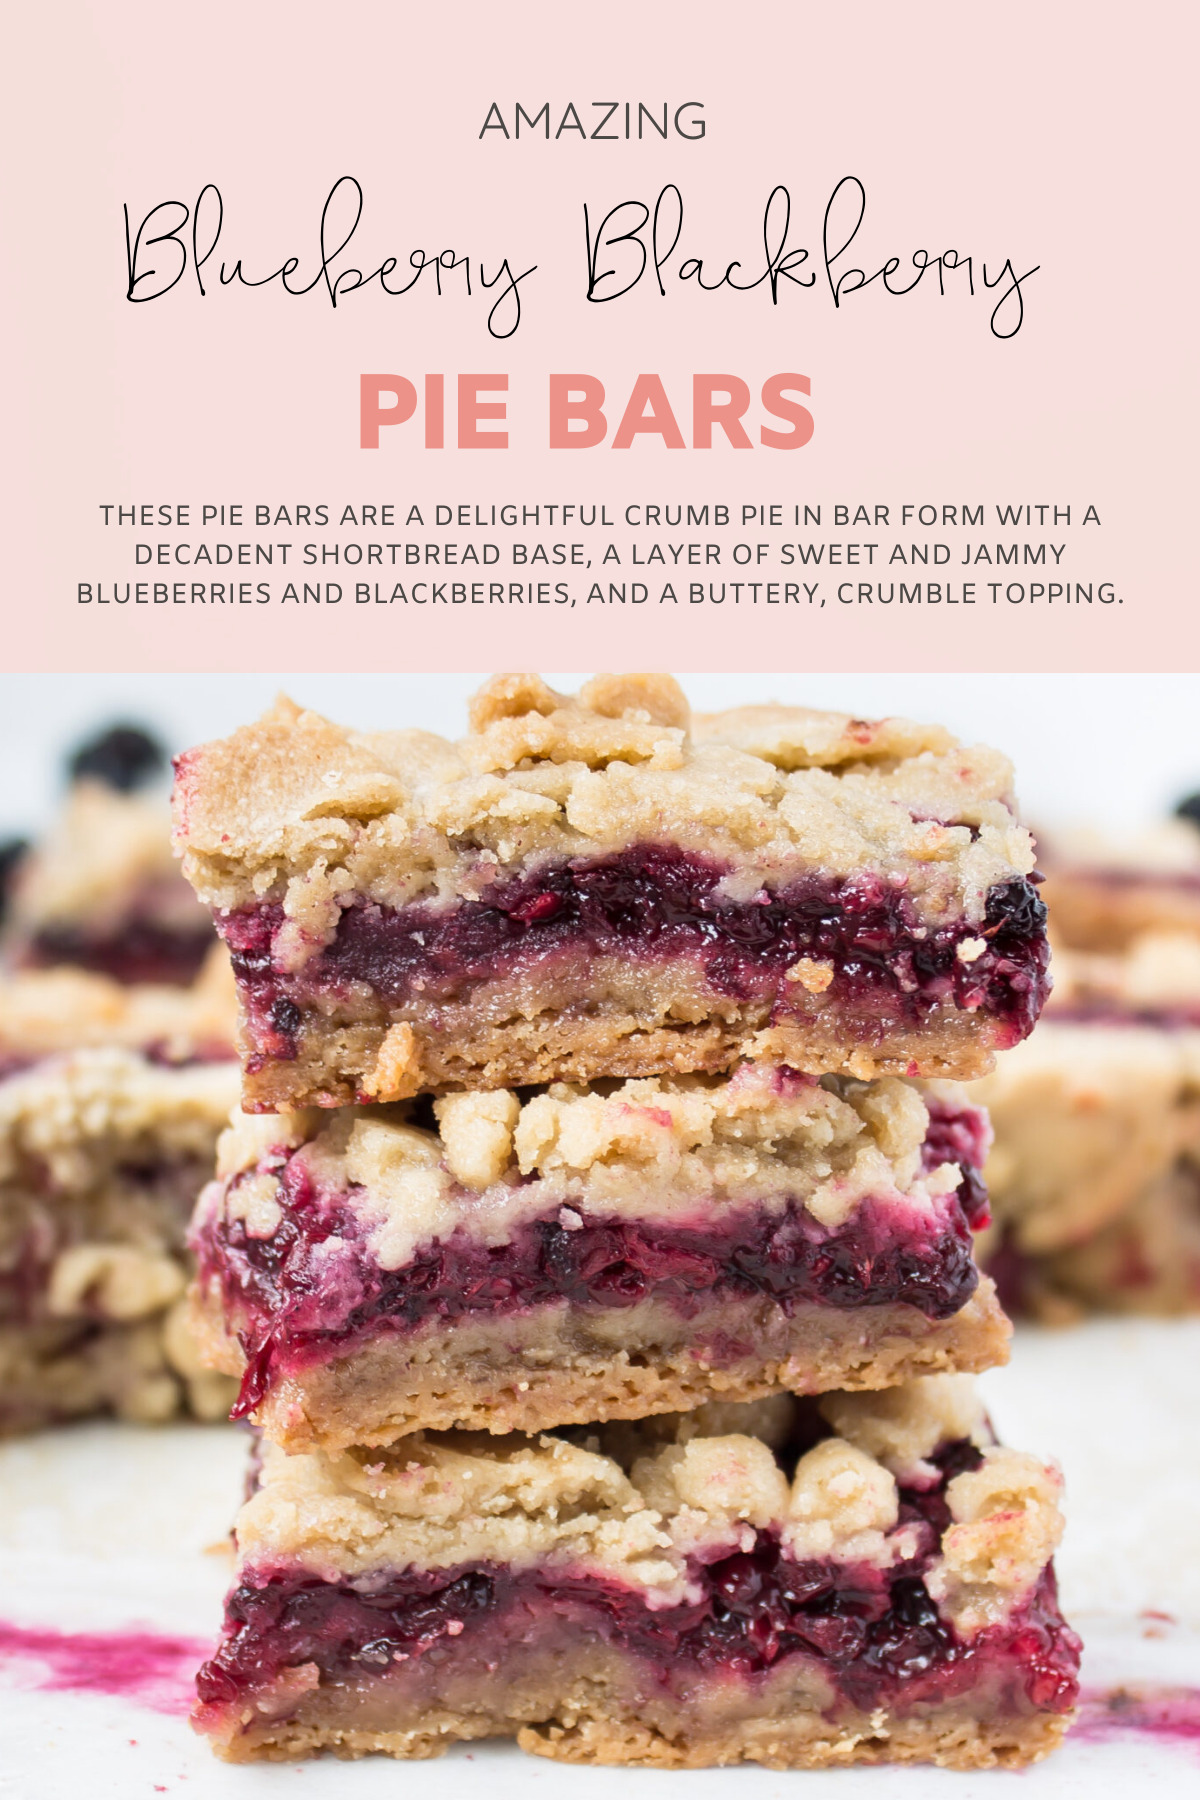 These blackberry and blueberry pie bars are basically a delightful crumb pie in bar form. The bars have a decadentshortbread base, a layer of sweet and jammy blueberries and blackberries, and a buttery, crumble topping. Perfect for a brunch or portable dessert for a party! | @glitterinclexi | GLITTERINC.COM